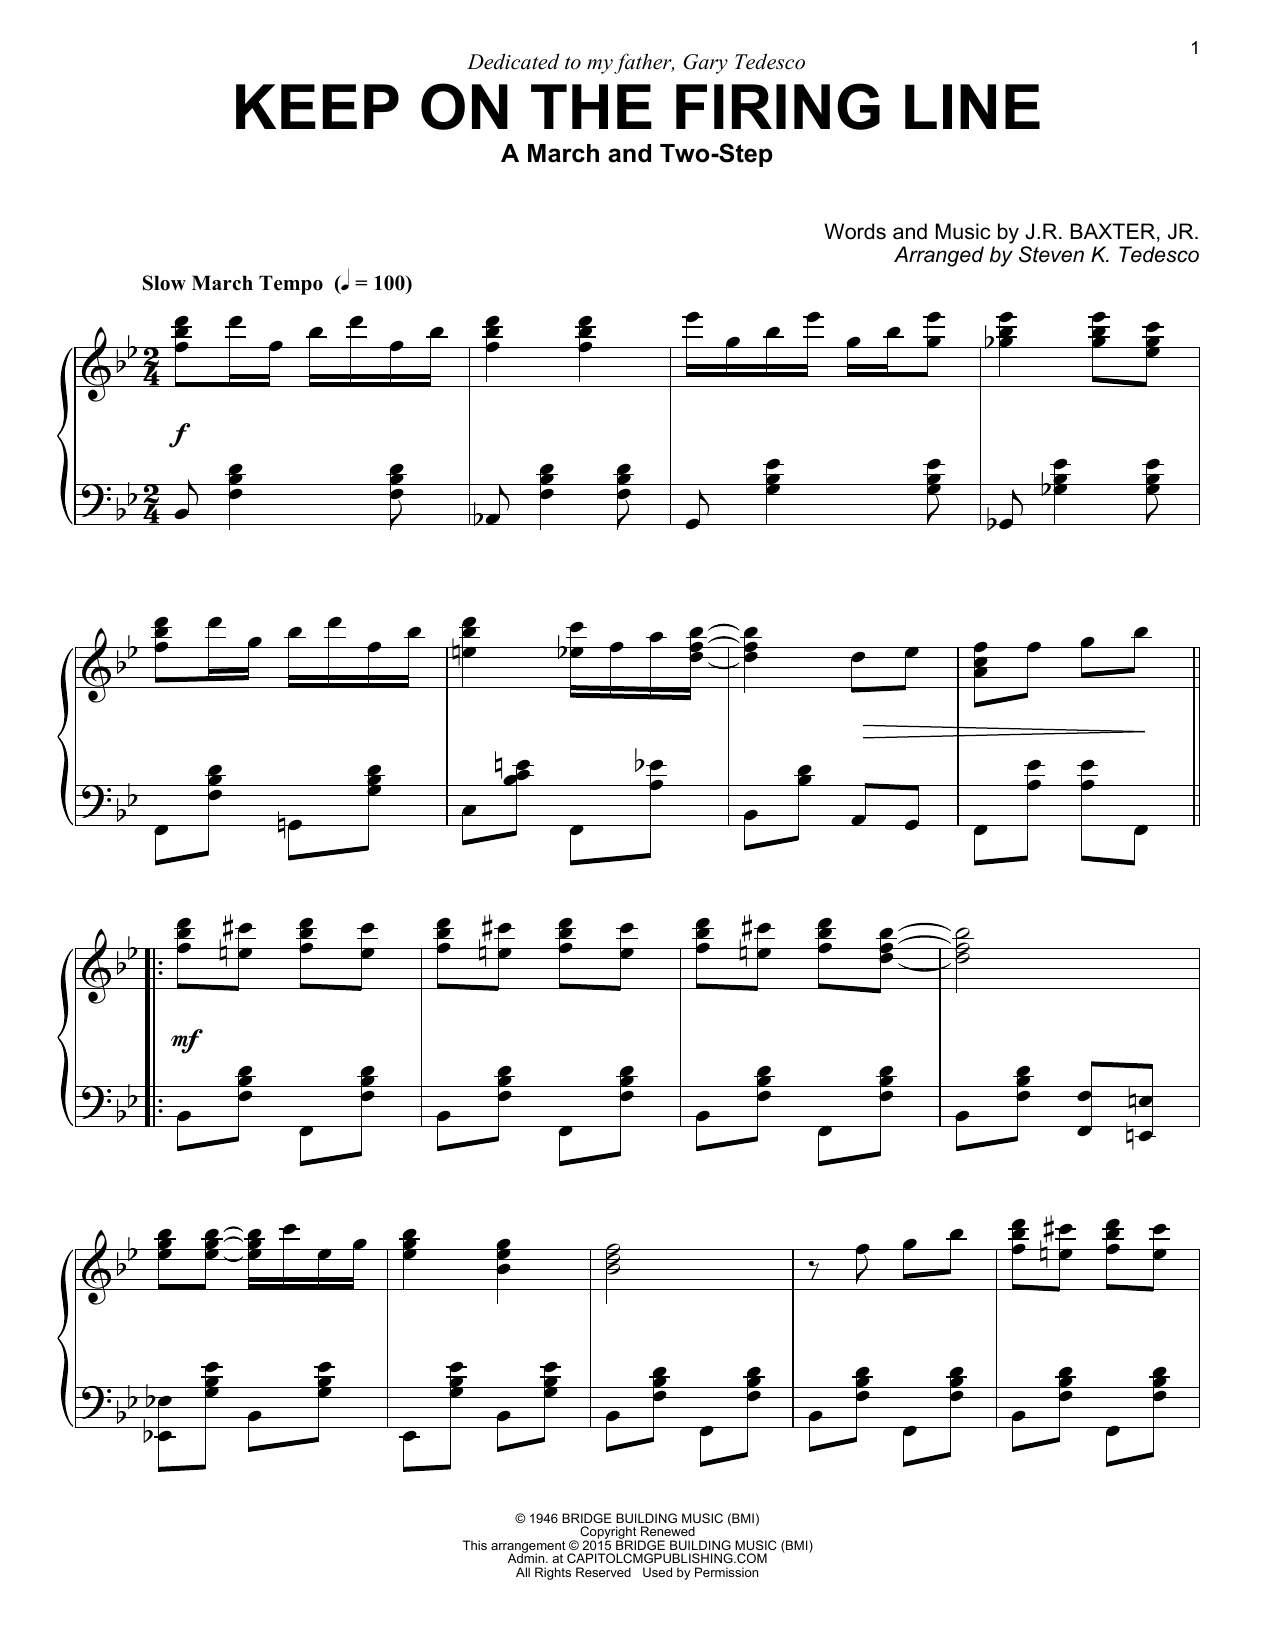 Download Steven K. Tedesco 'Keep On The Firing Line' Digital Sheet Music Notes & Chords and start playing in minutes